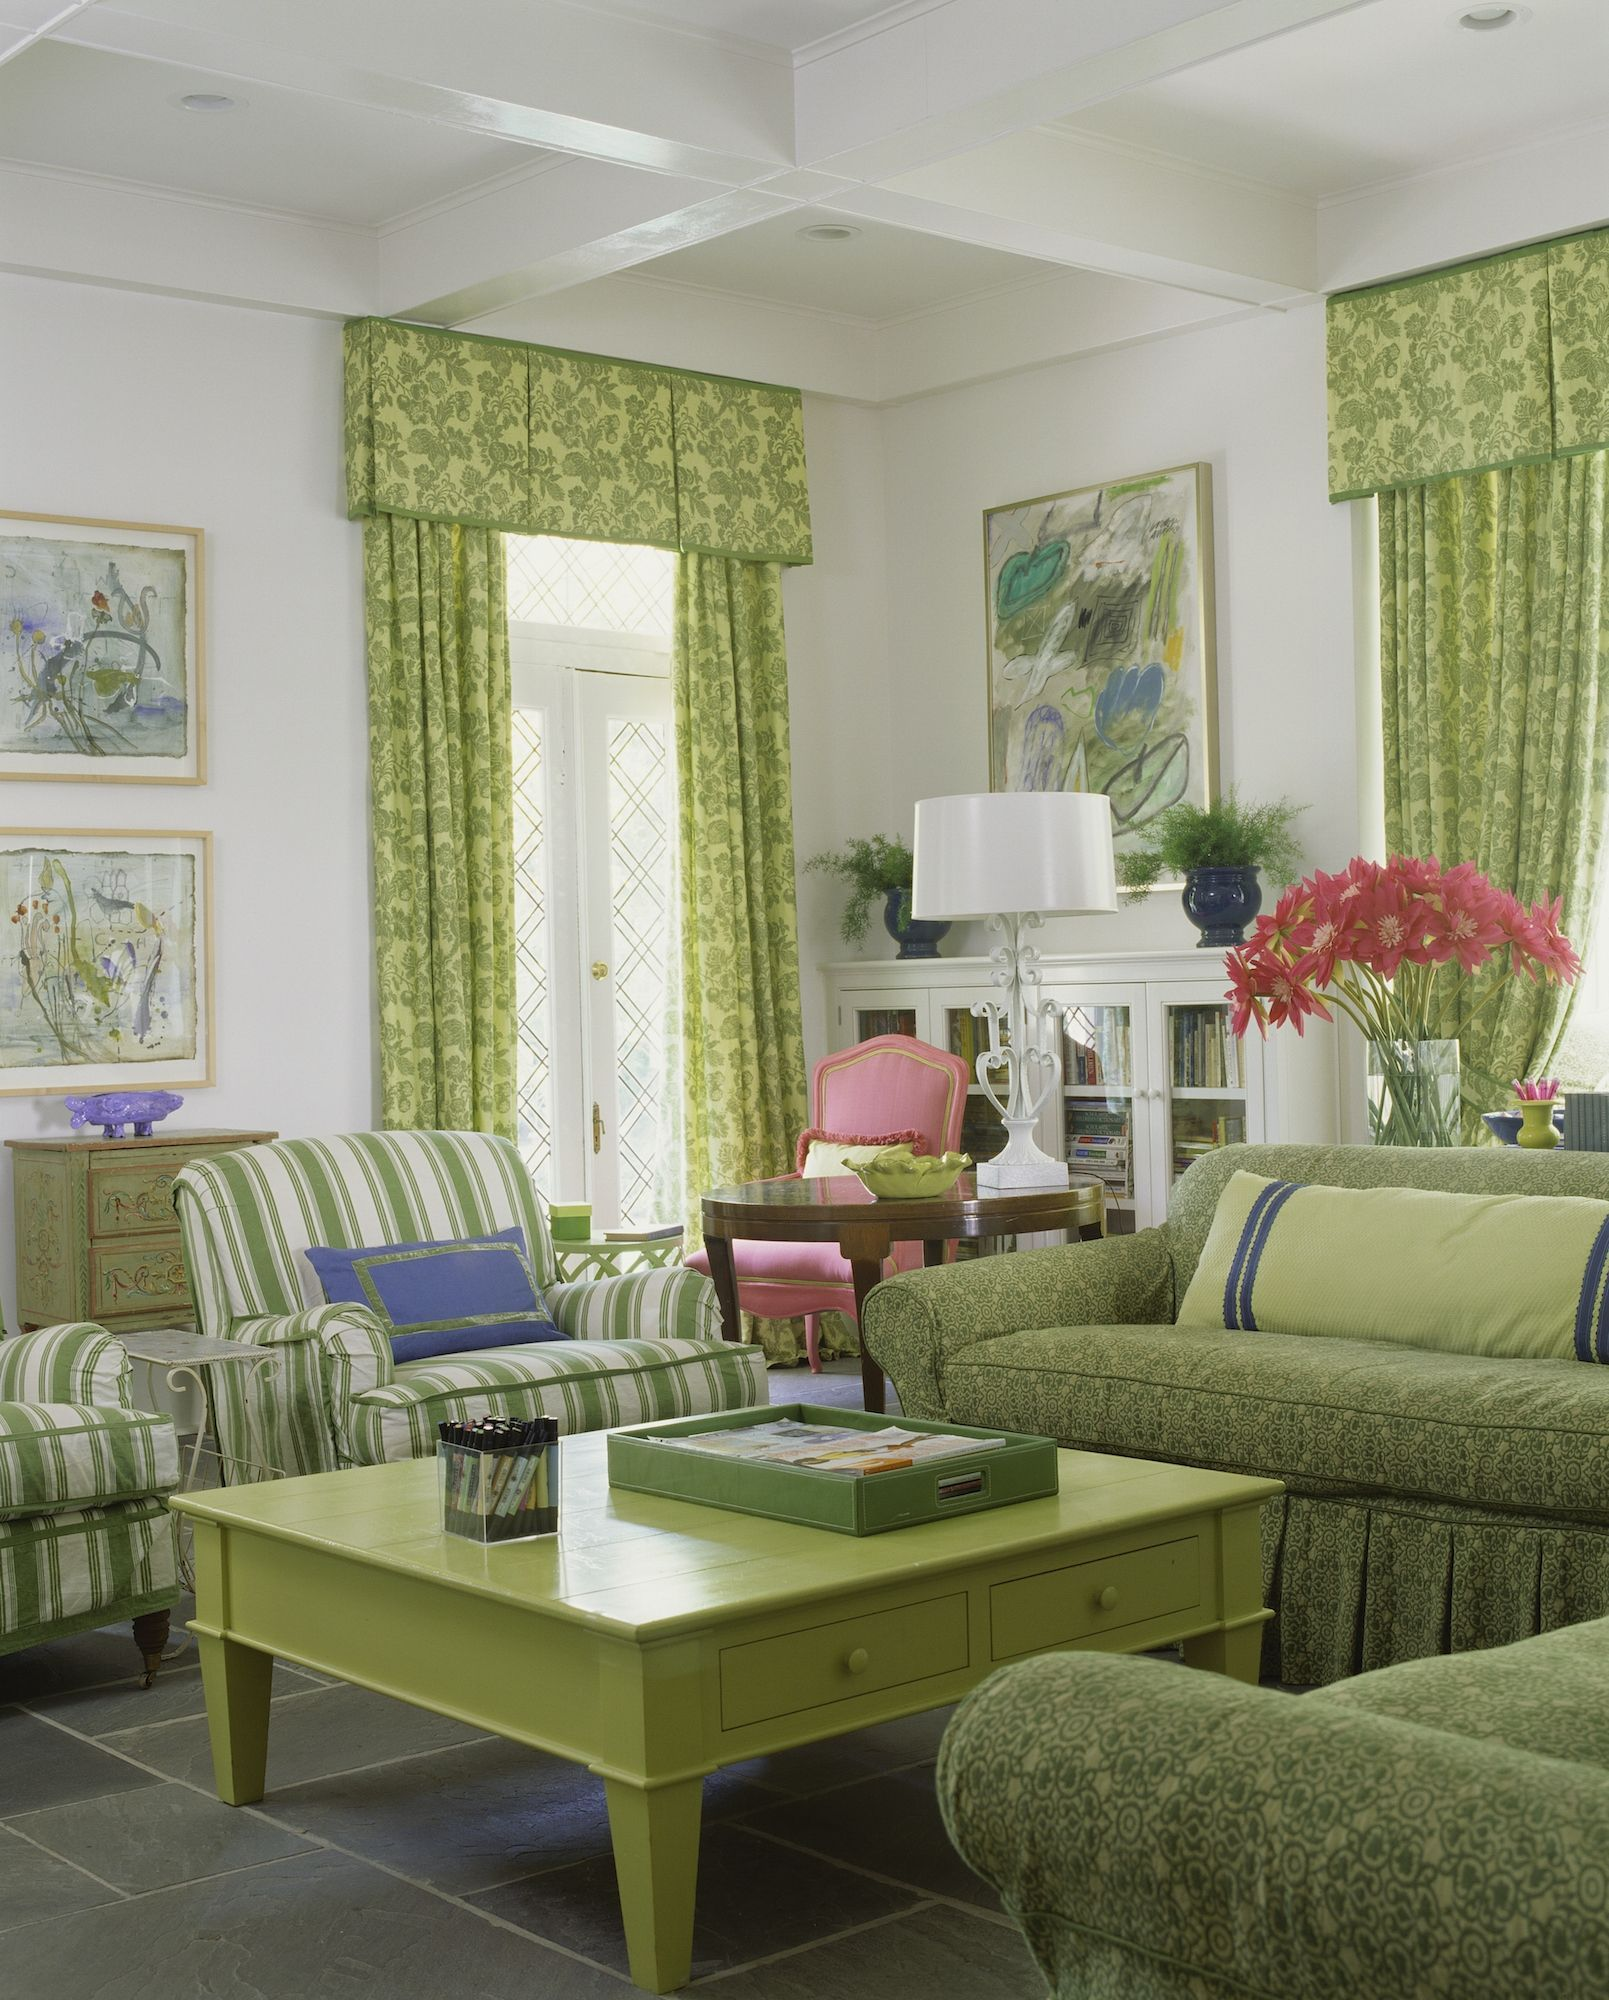 25 Outdated Home Trends We'd Never Like to See Again ...